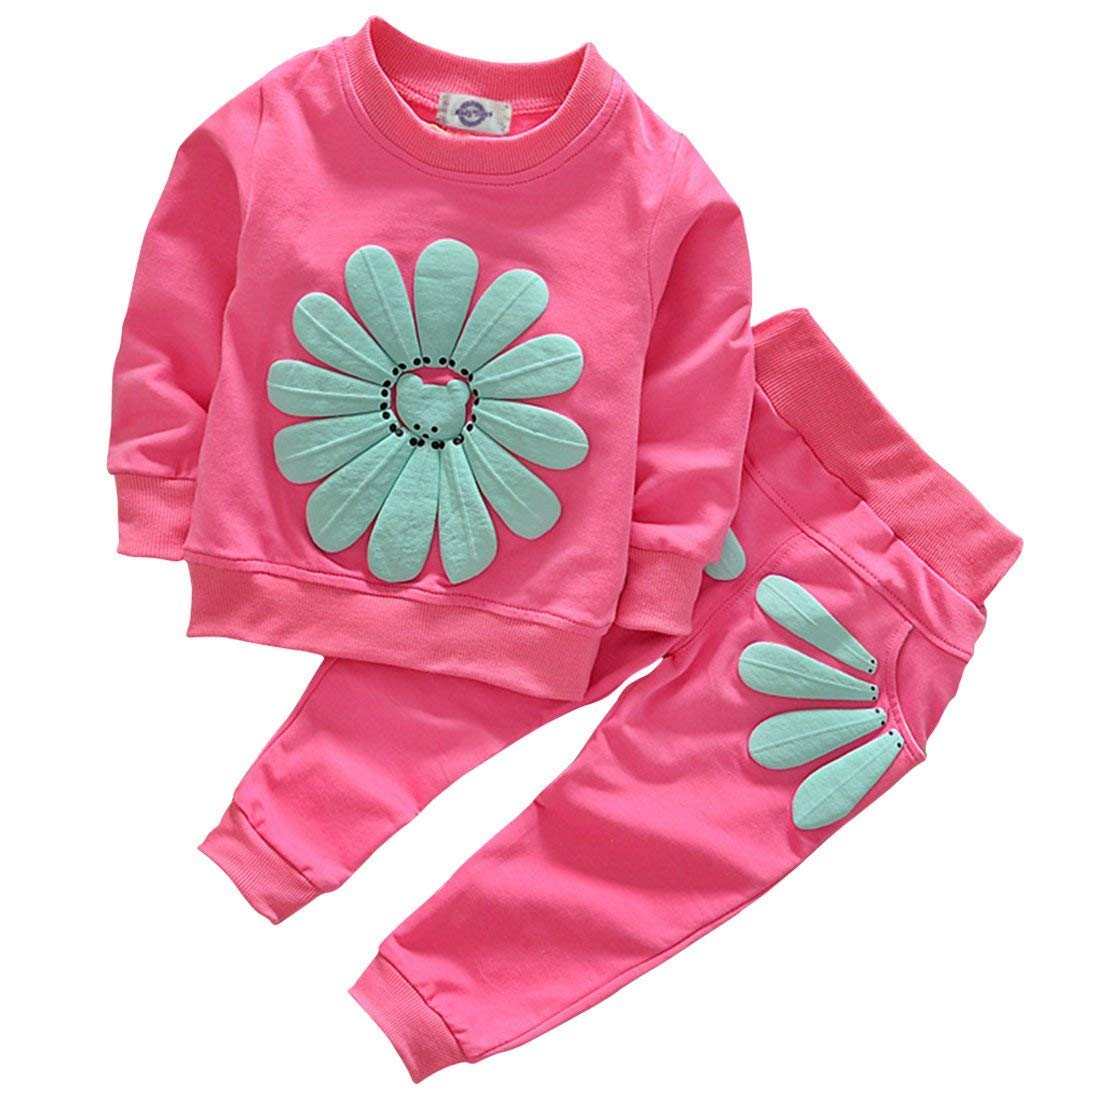 LOliSWan Toddler Baby Girls Sunflower Clothes Set Long Sleeve Top and Pants 2pcs Outfits Fall Clothes